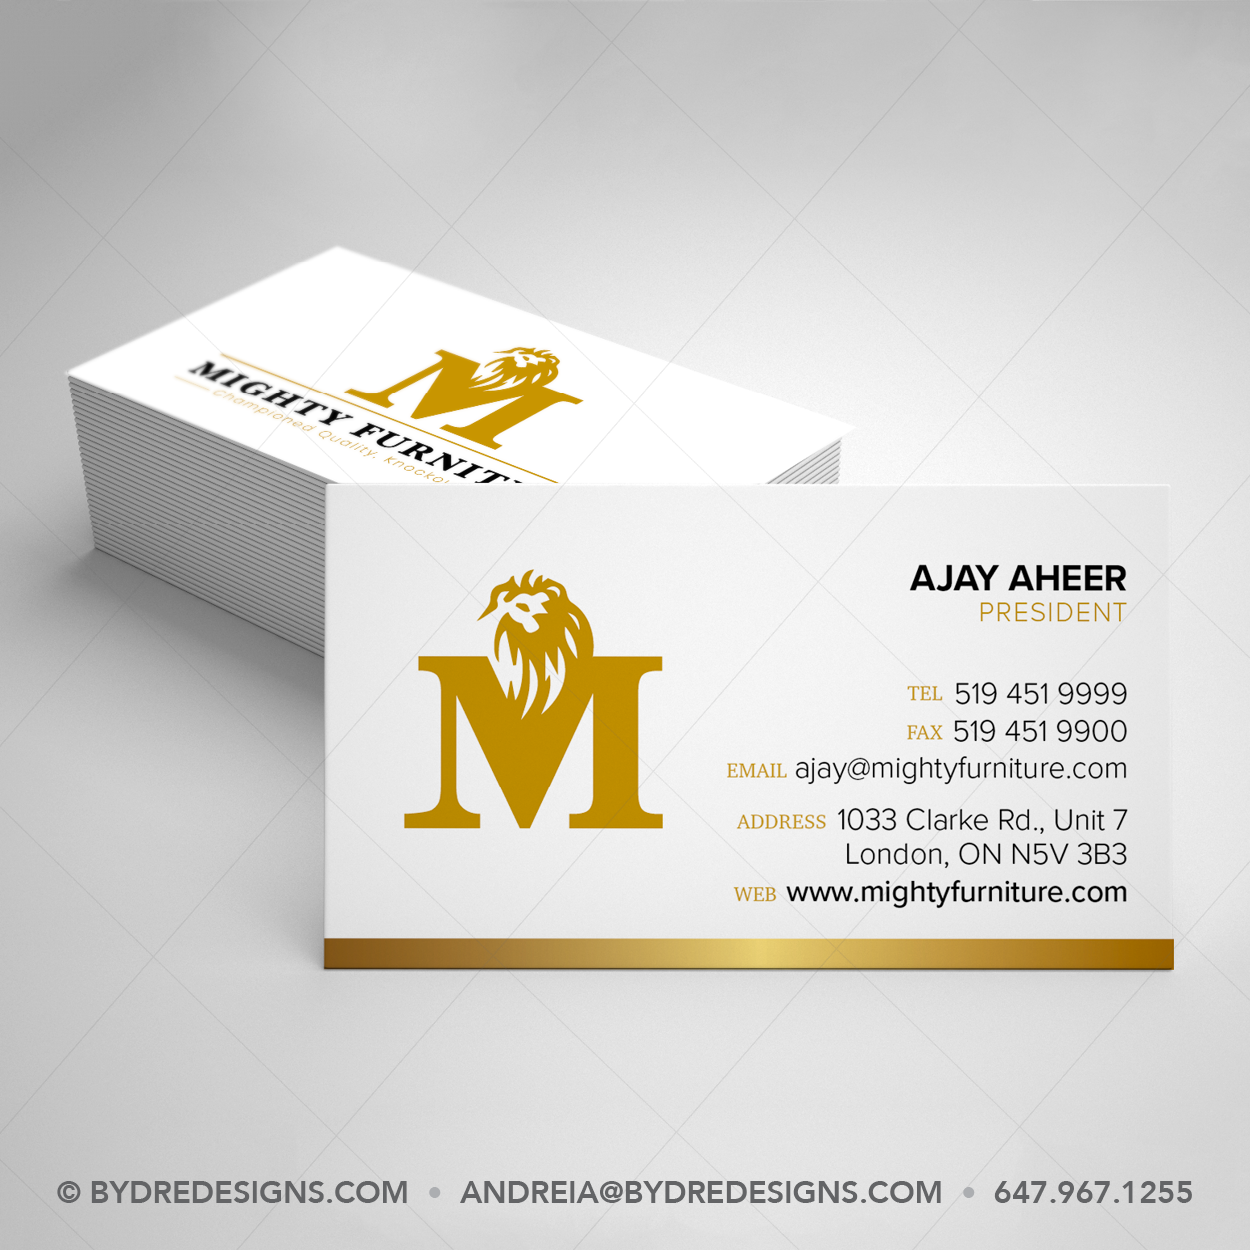 Business Card Design For Furniture Store Gold And White Business Card Business Card Design Classic Business Card Luxury Business Cards